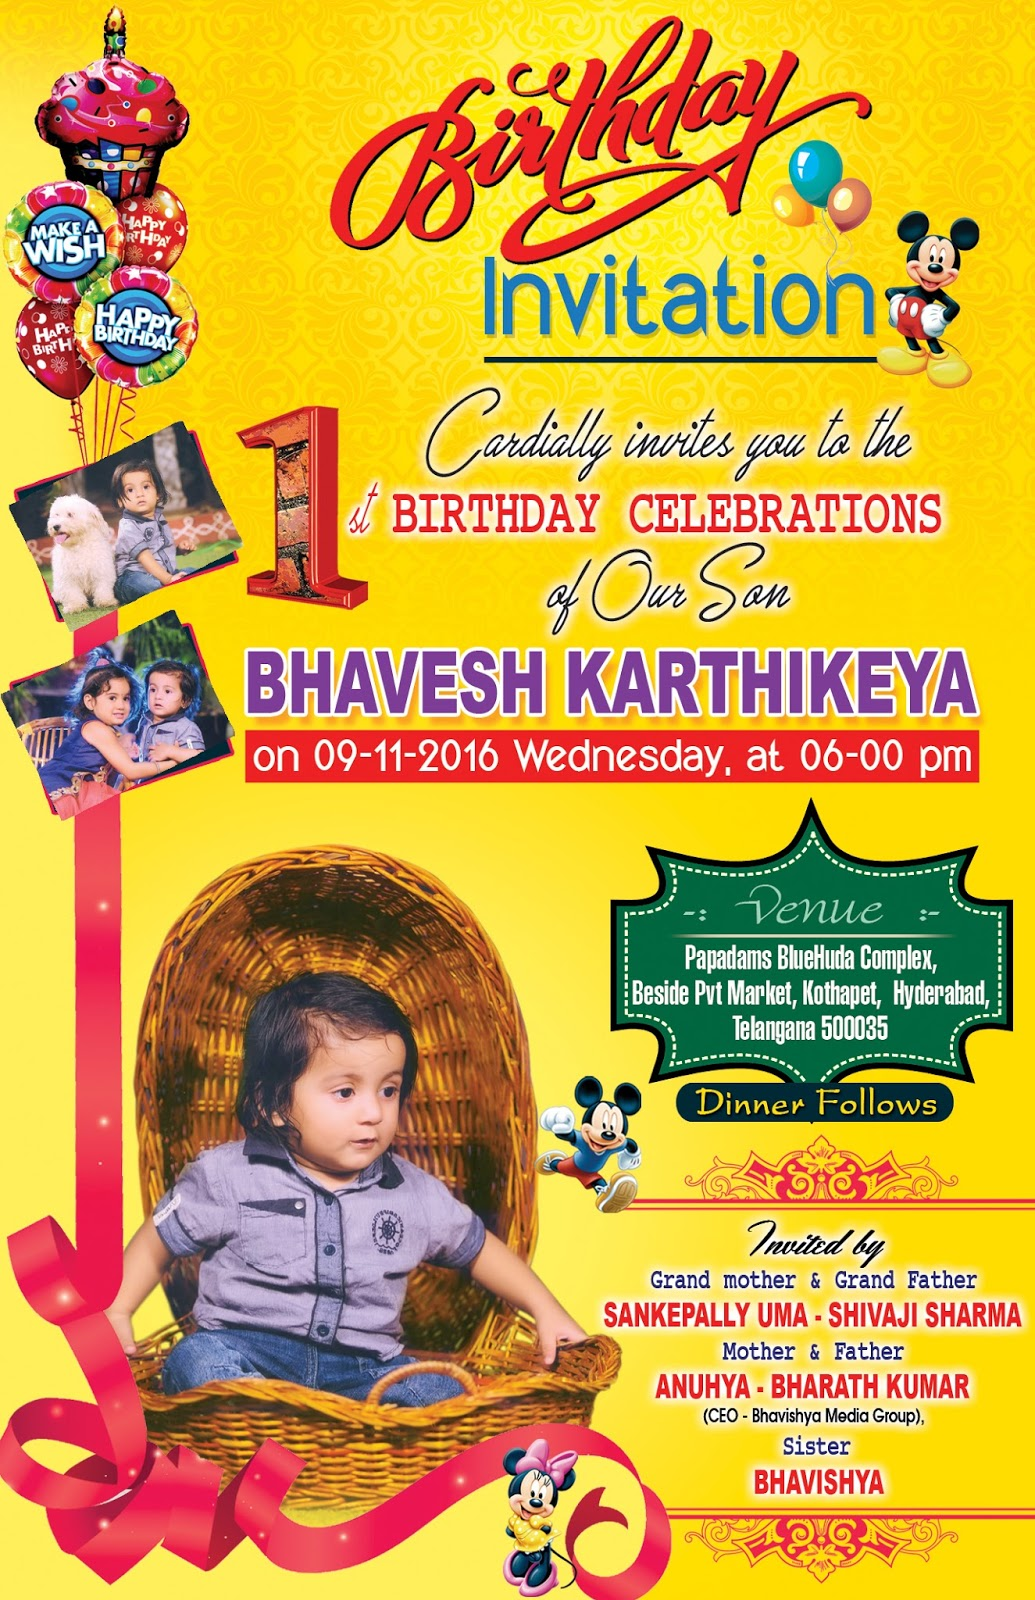 1st birthday invitation card psd background | naveengfx